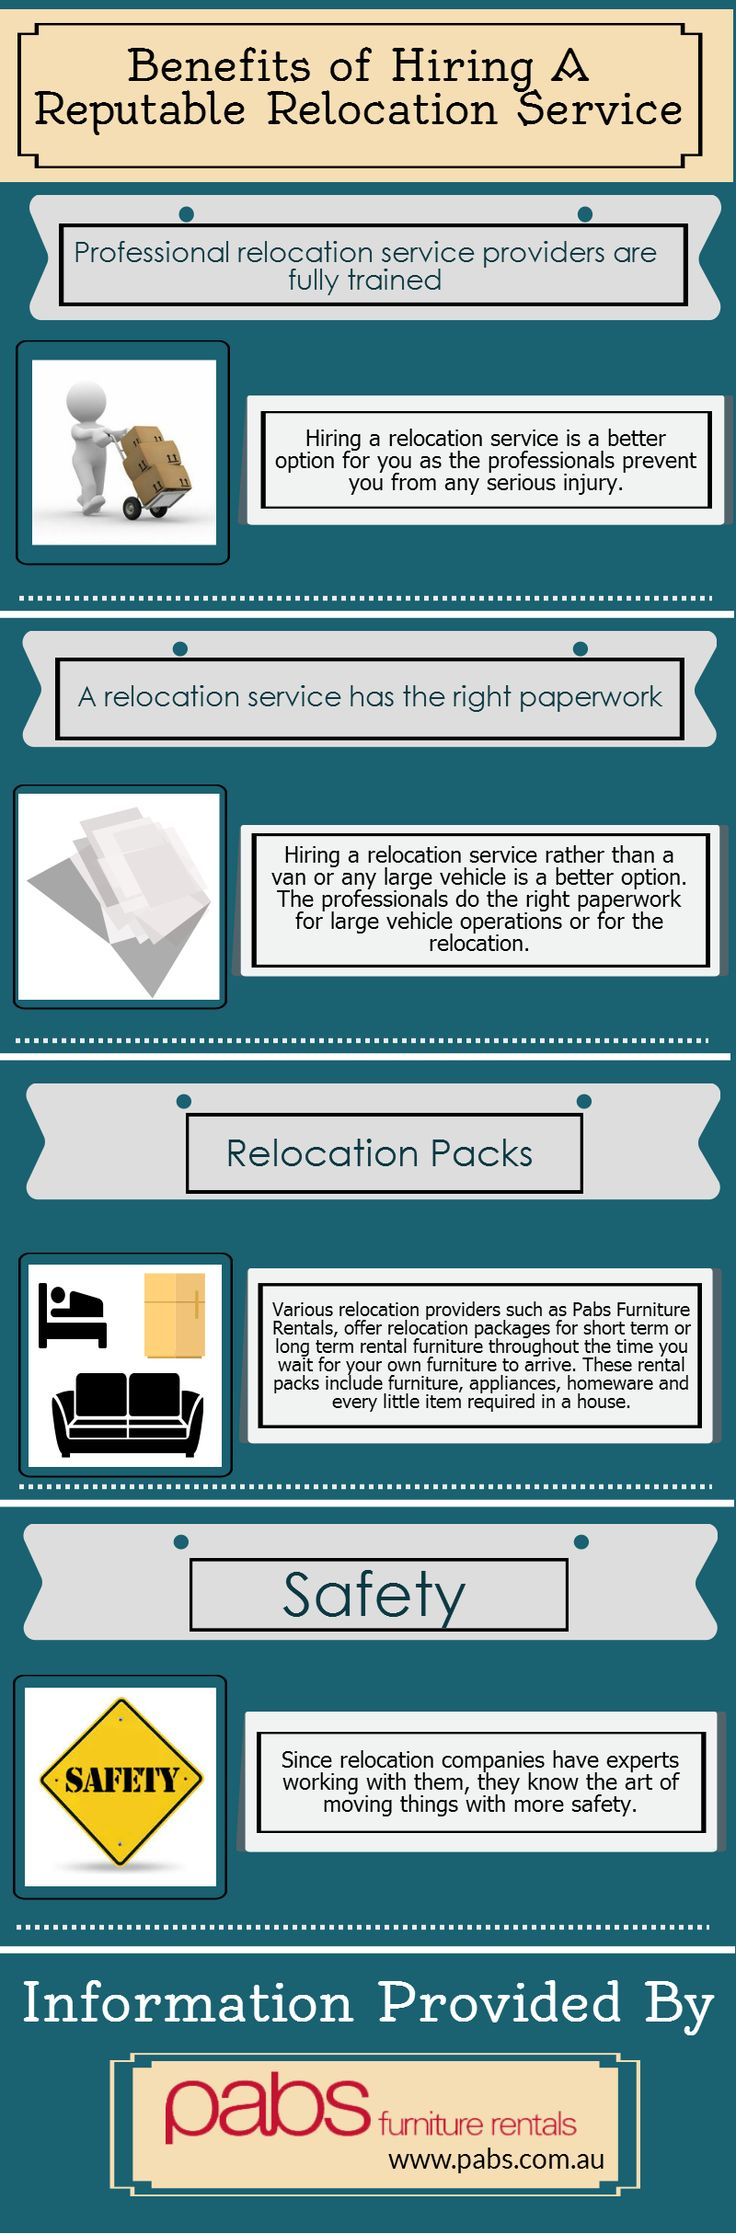 There are plenty of ways for relocating. It can be doing it on your own or hiring some professionals to do it for you. However, a reputable relocation service can do this task efficiently. Check out this infographic to know the advantages of hiring a reputable relocation service.